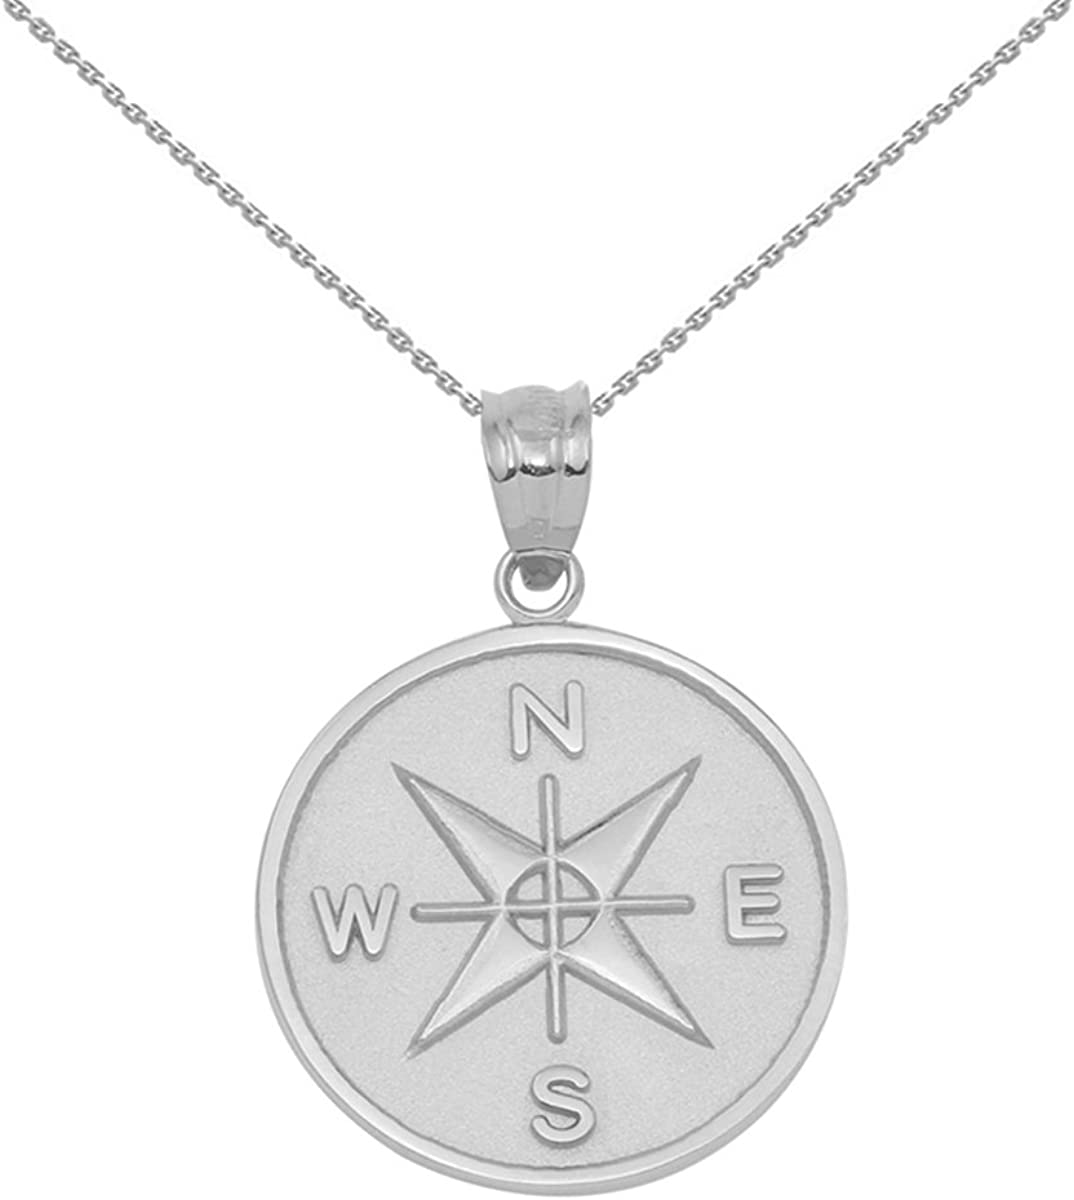 925 Sterling Silver Compass Pendant Medallion Necklace SALENEW very Free Shipping New popular Charm